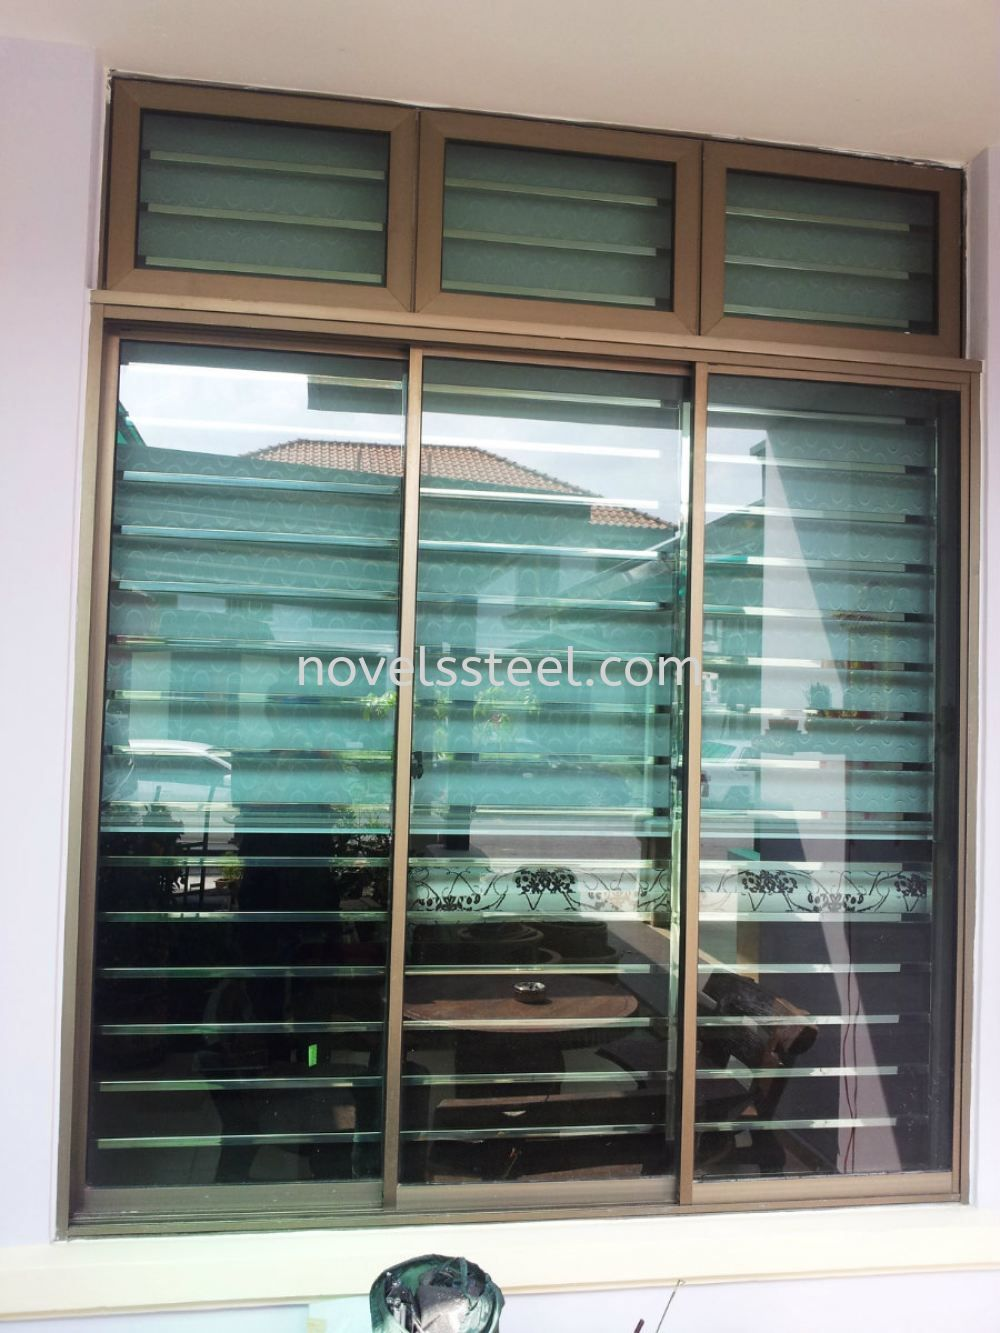 Stainless Steel Window grille 028 Stainless Steel Window grille ...